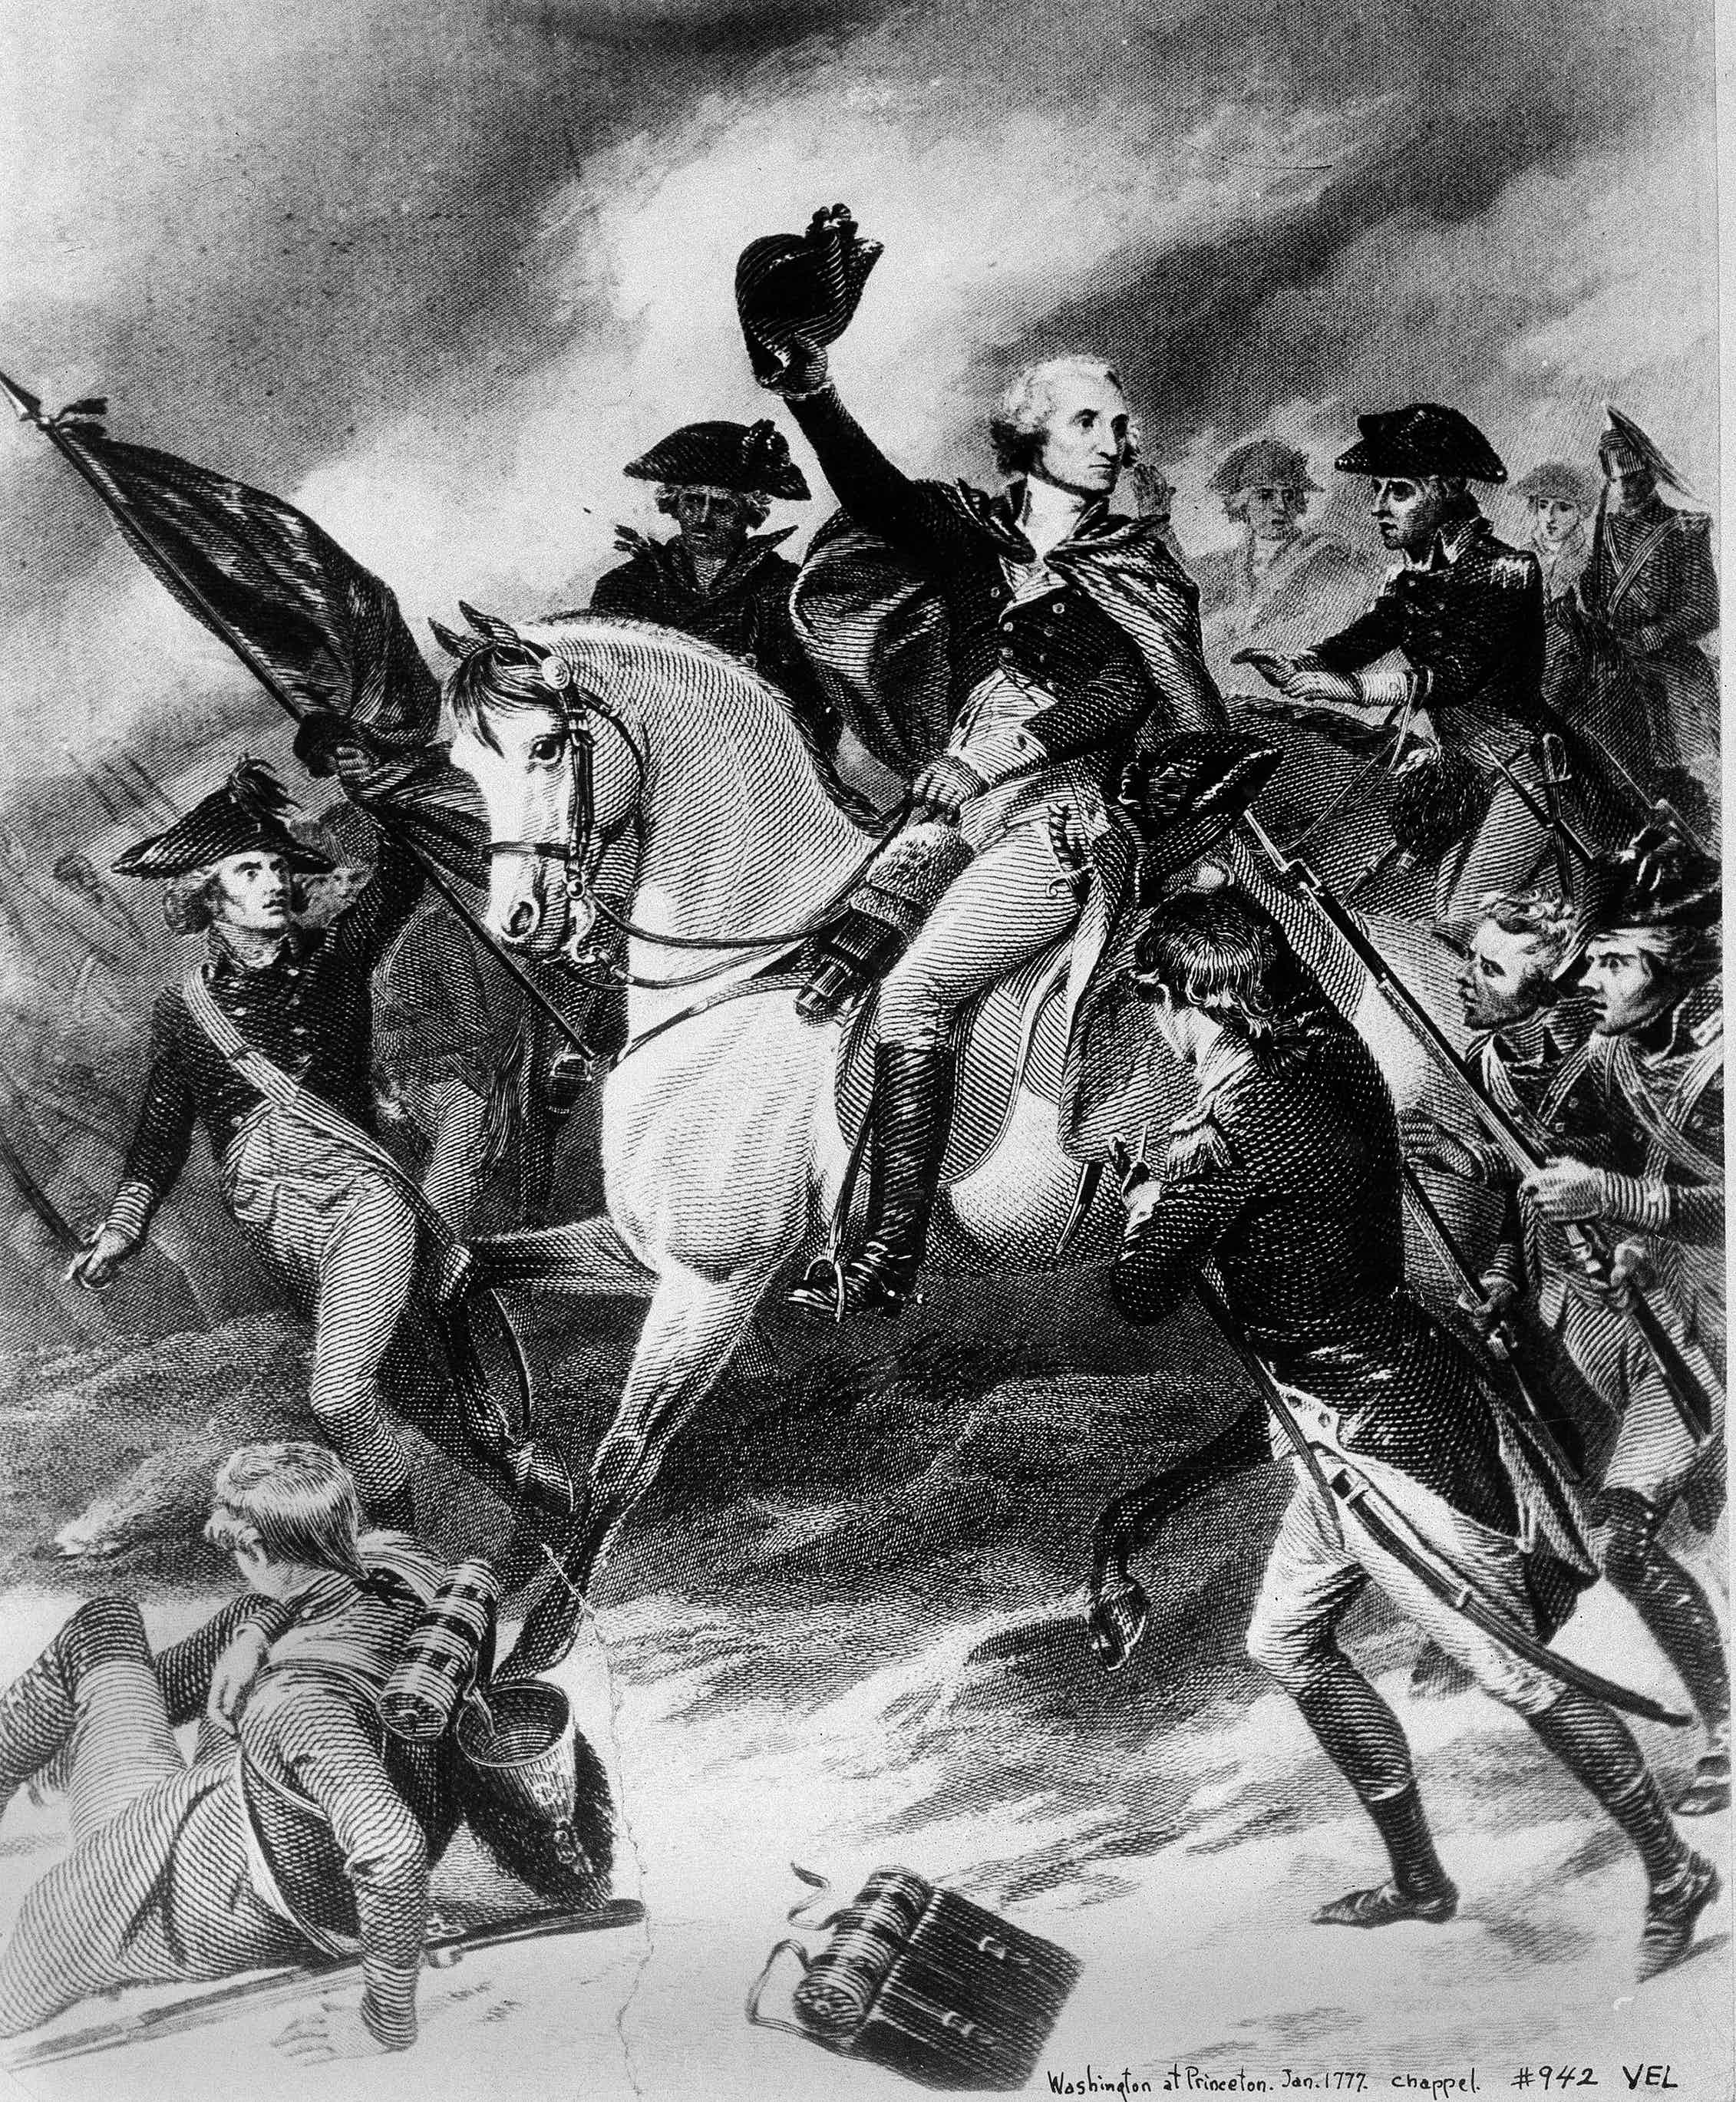 An illustration of Gen. George Washington on a horse holding his hat as he leads his men in a battle in 1777